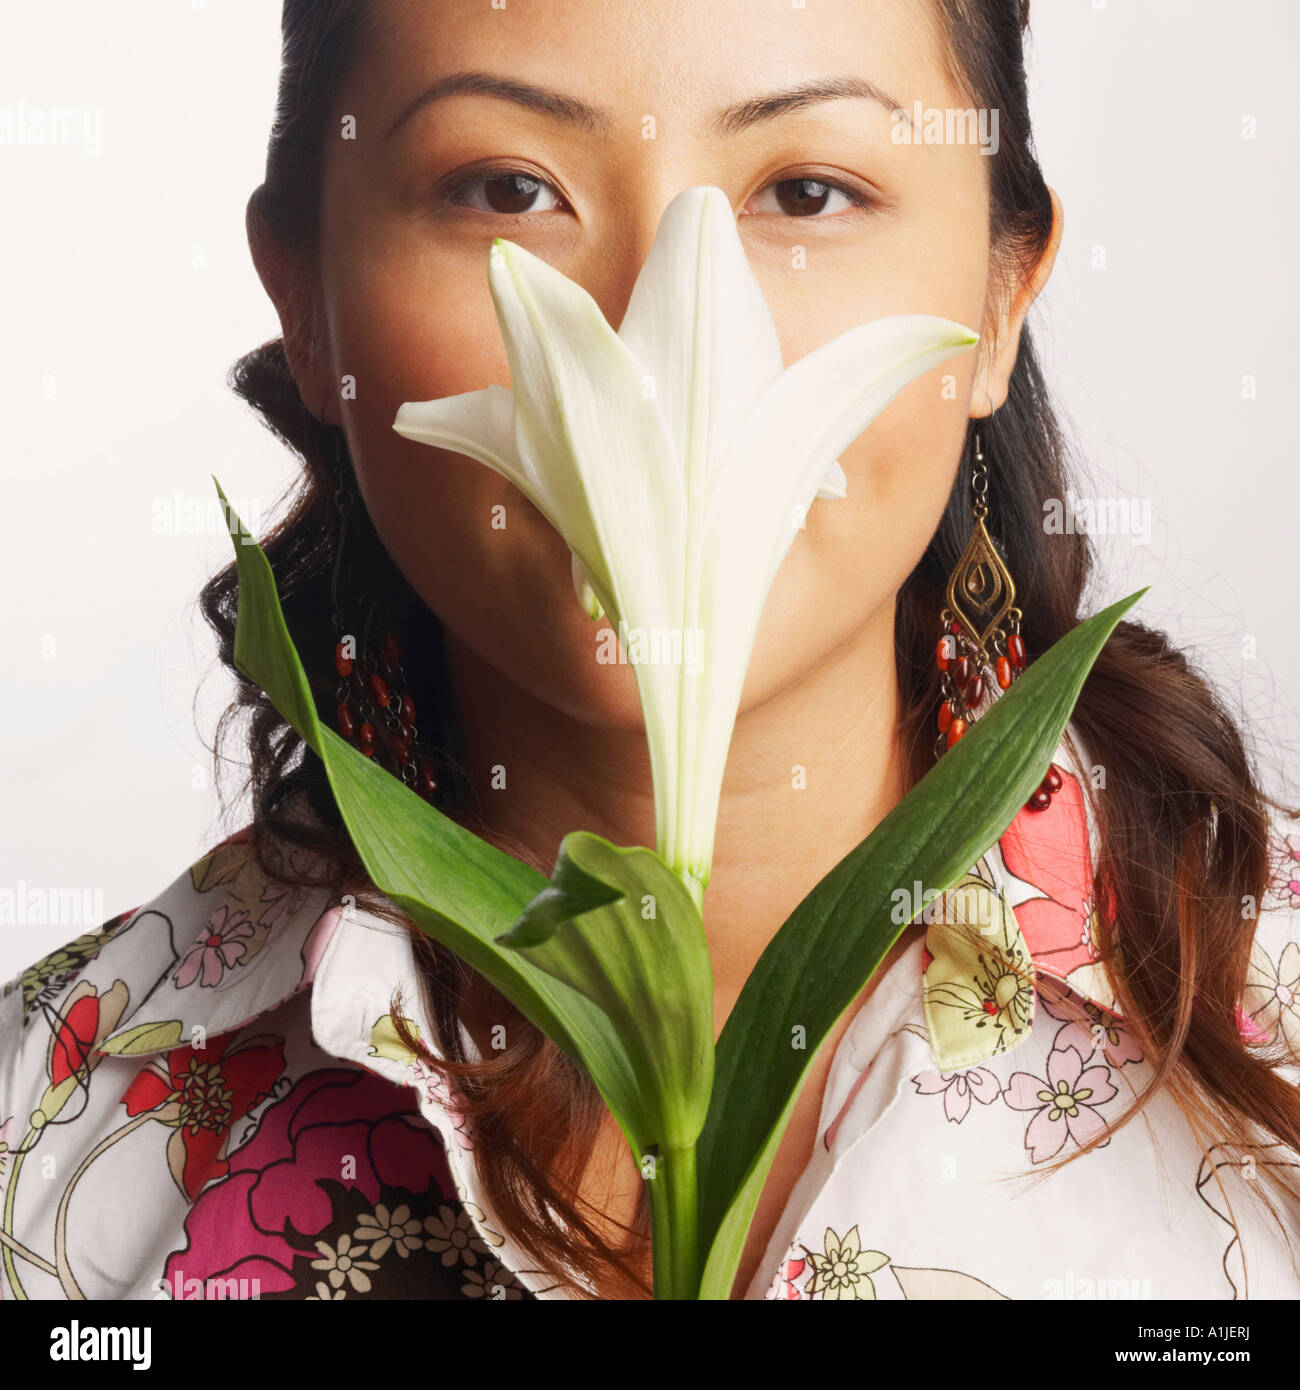 Close-up of a young woman smelling a flower - Stock Image